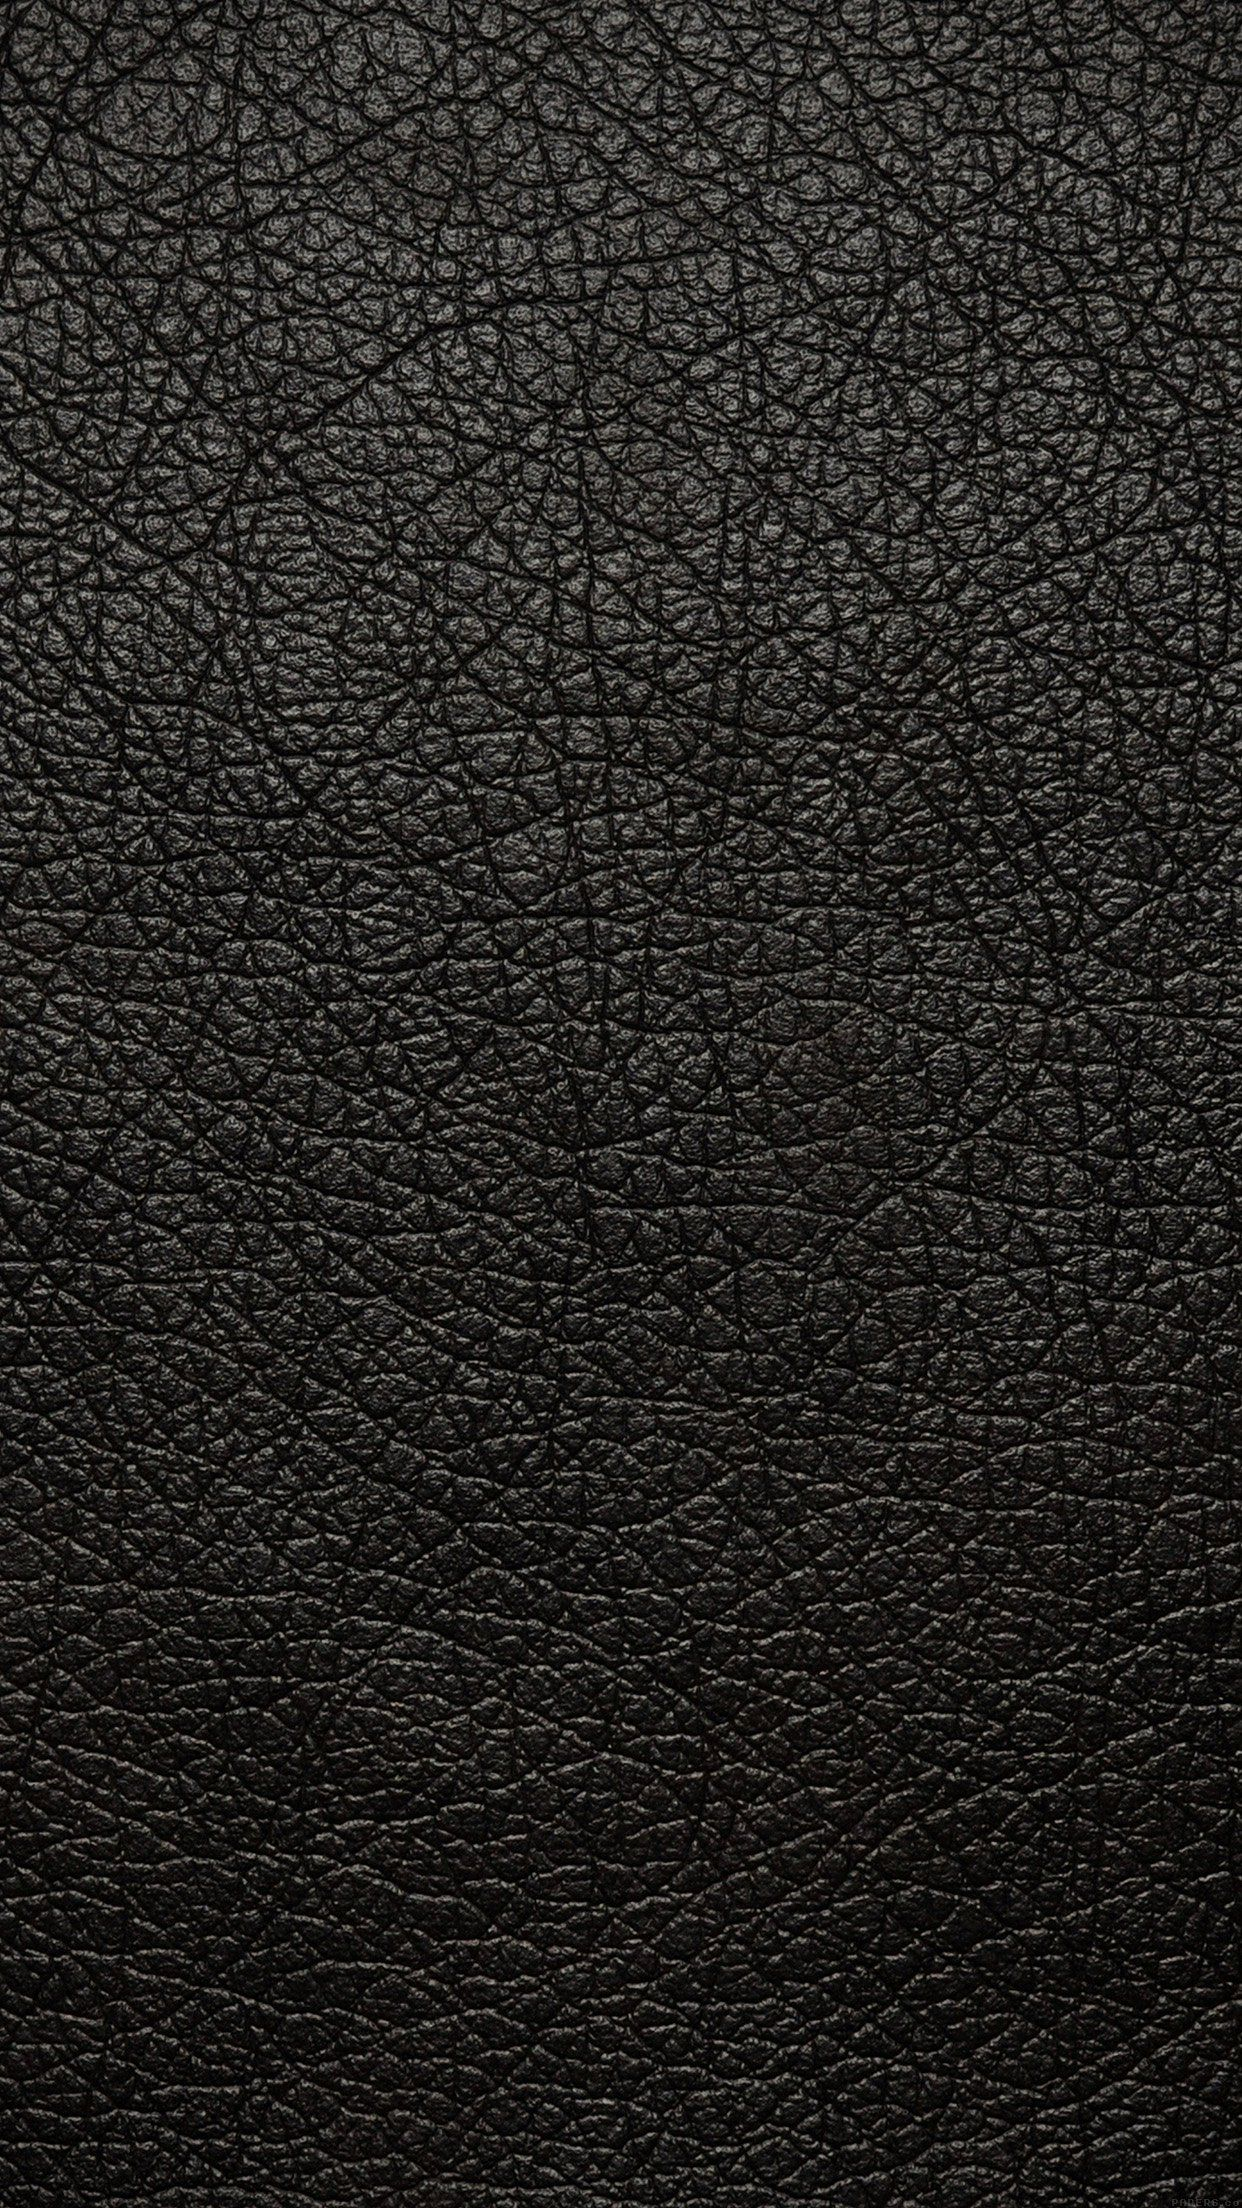 Leather black backgroundvtexture (With images) Textured